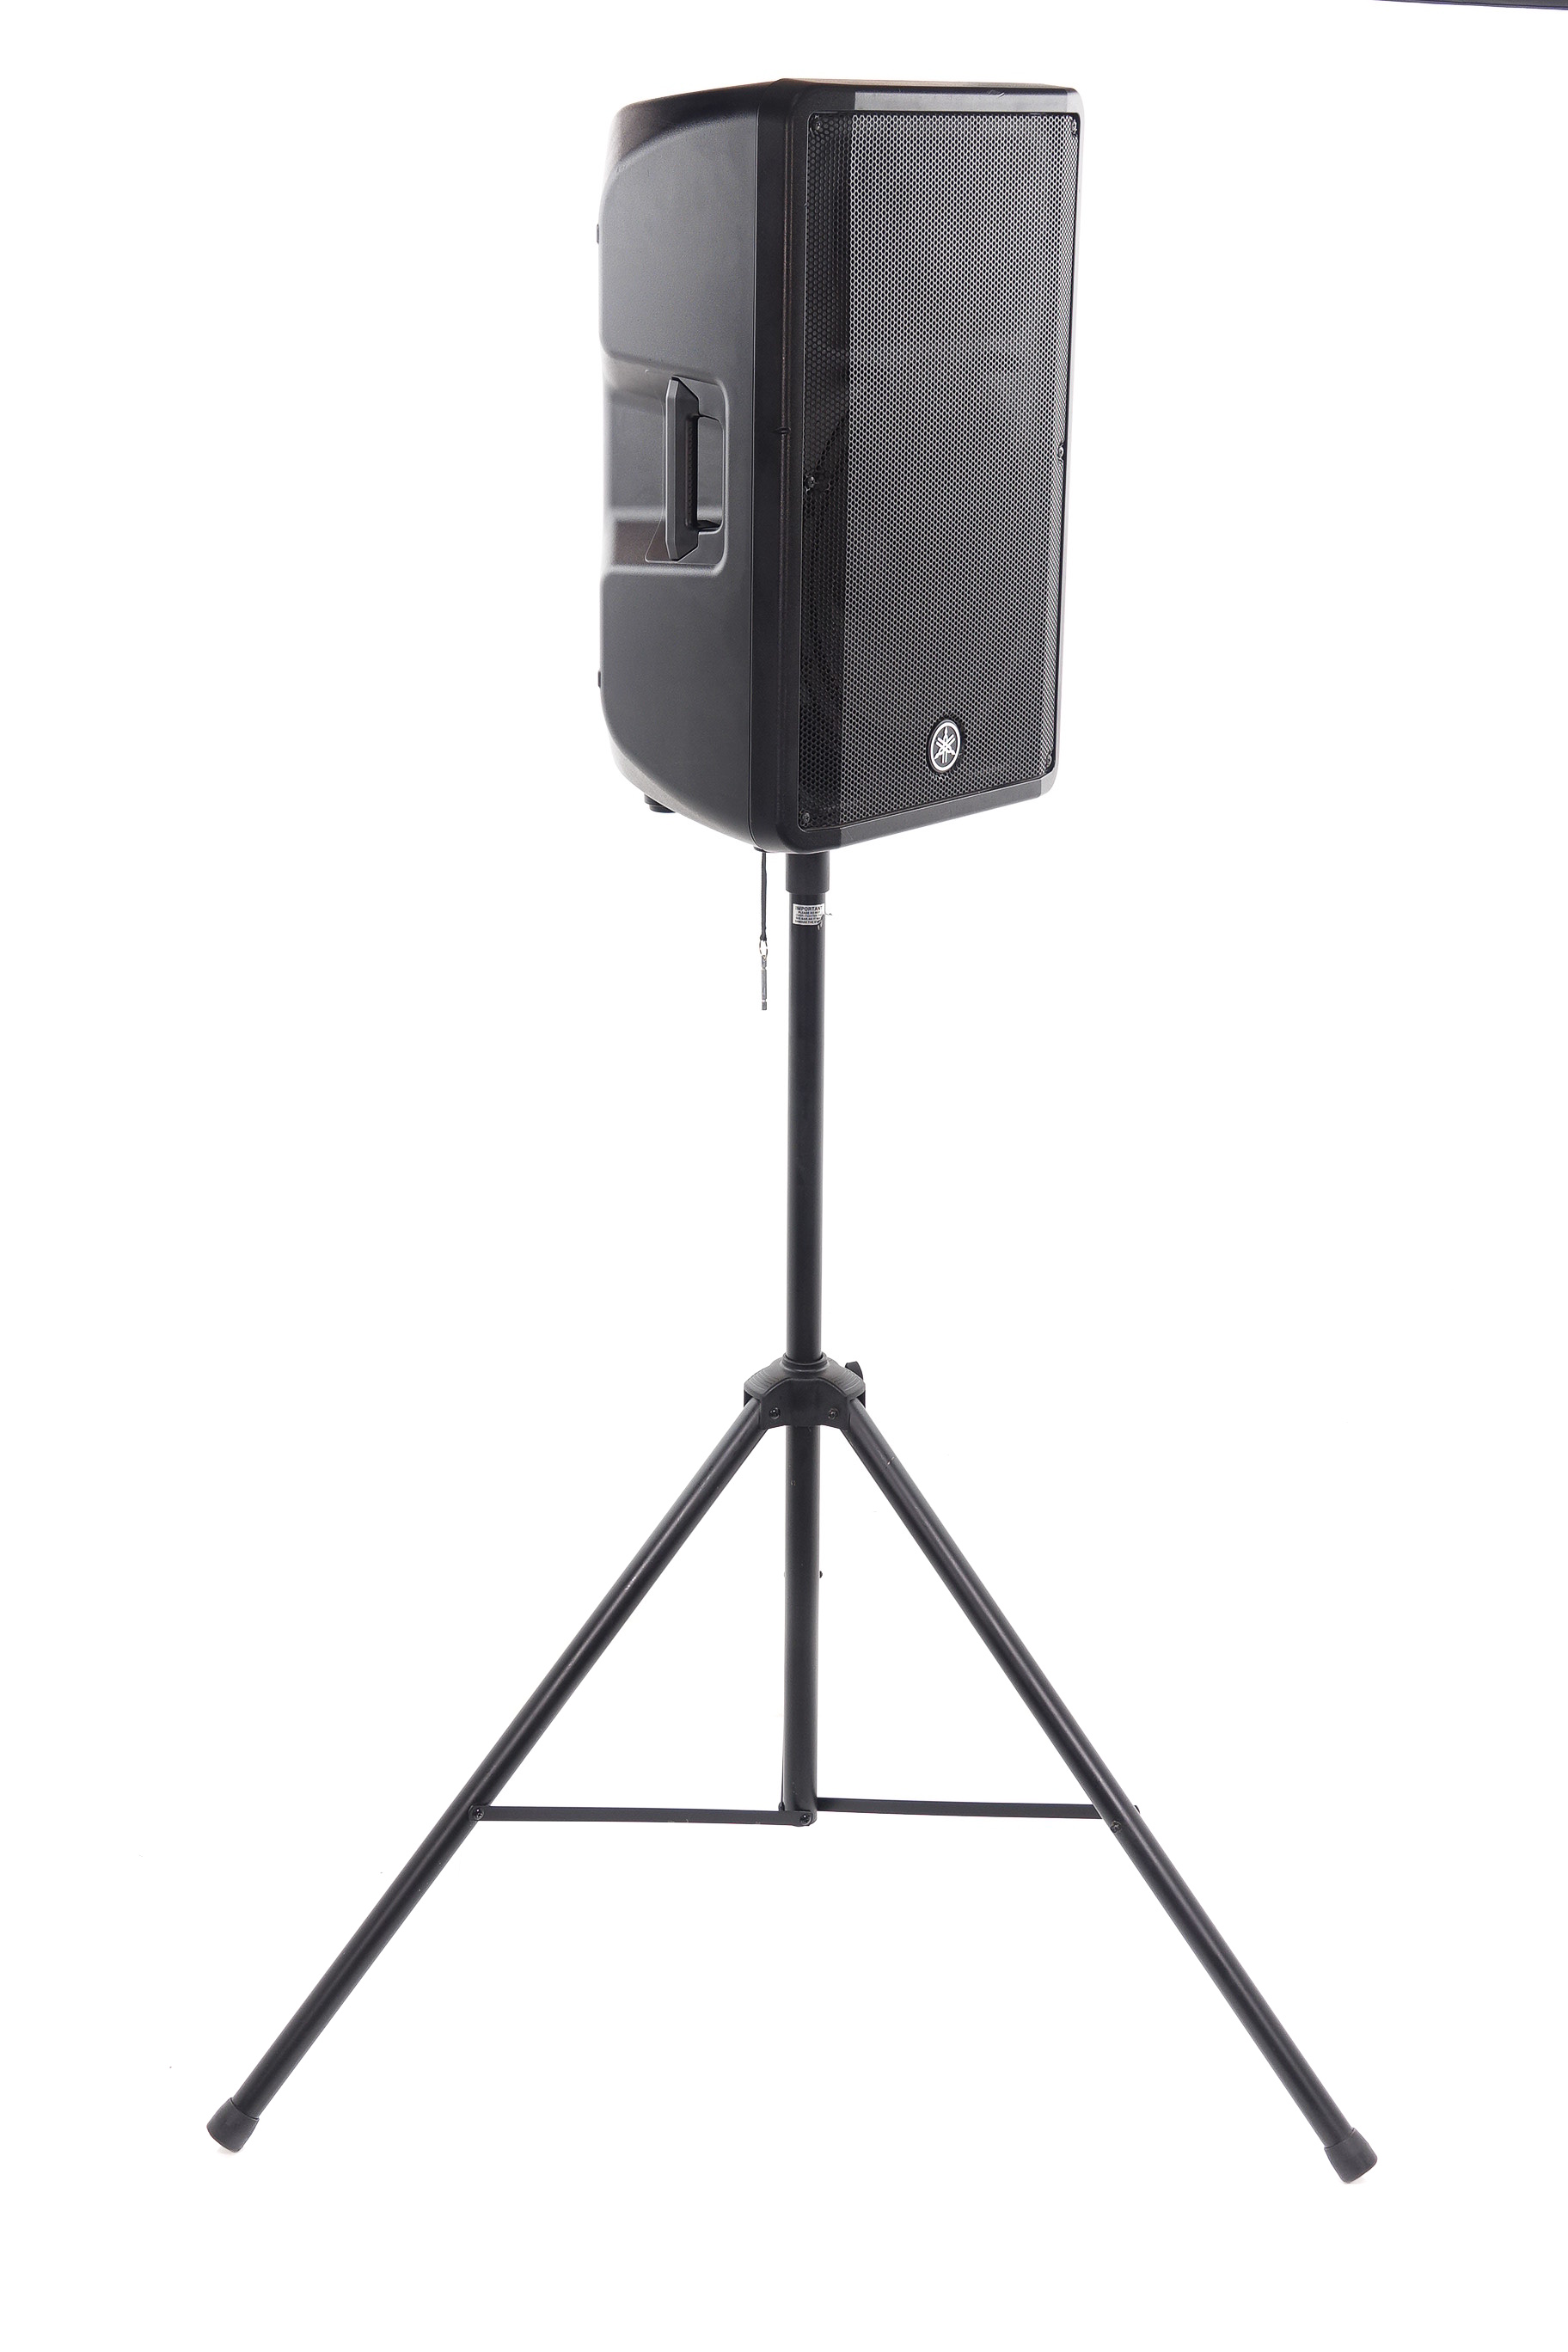 Pre-Loved Powered Speakers Rental from $15/month - Musicorp